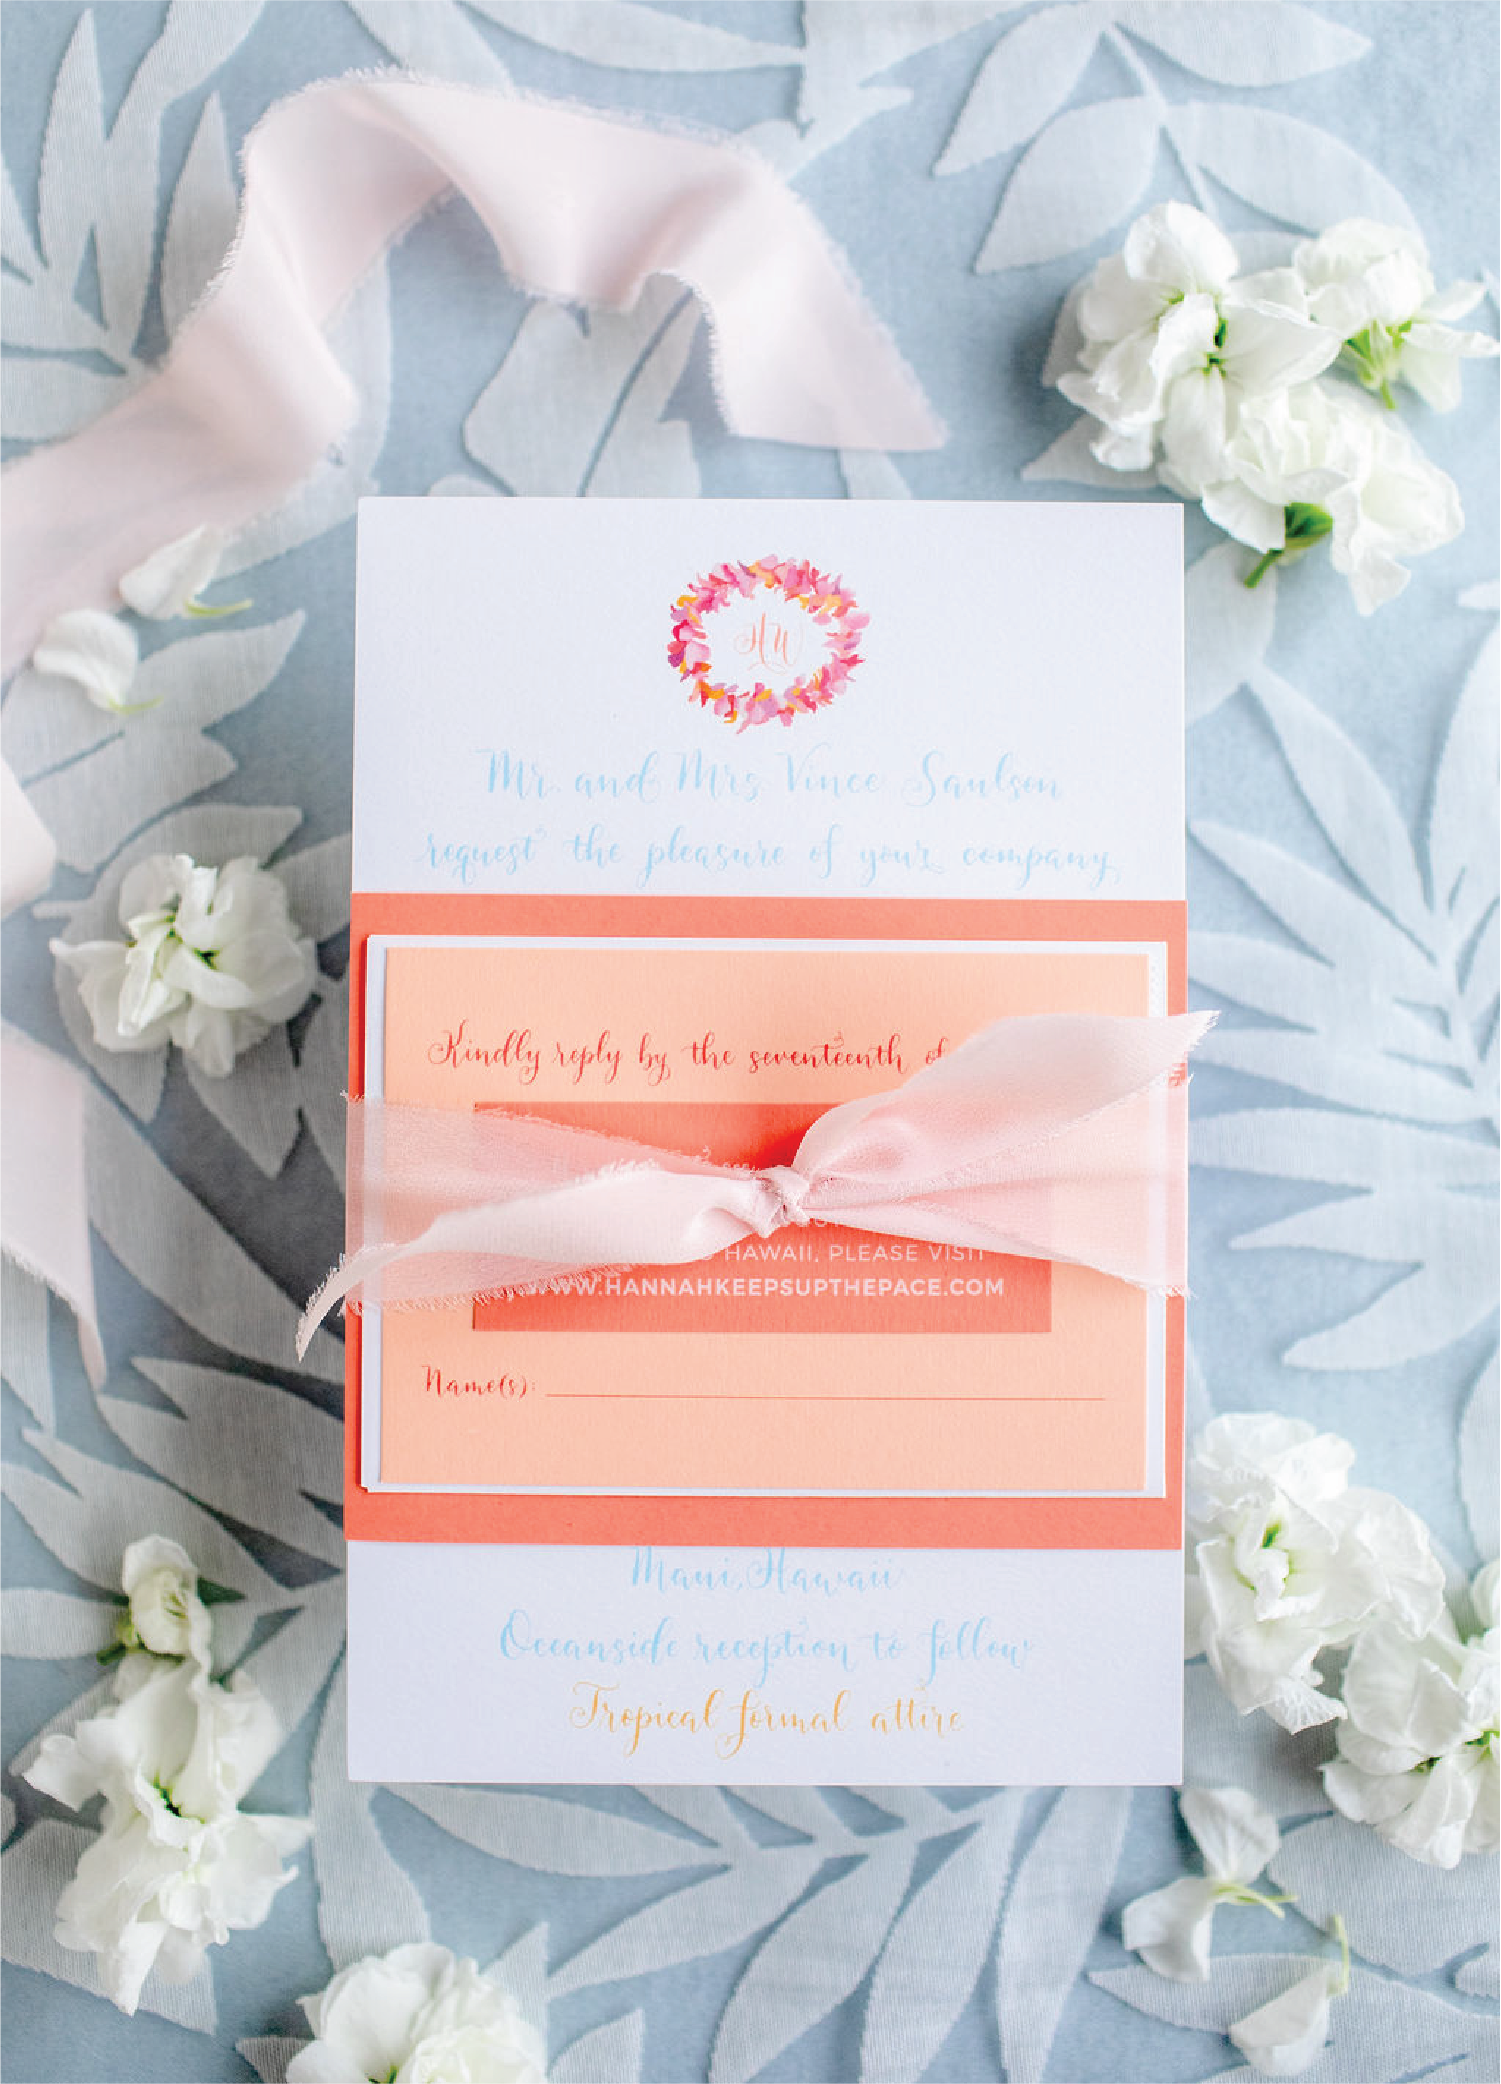 Coral and peach wedding invitations with calligraphy by Leah E. Moss Designs for Four Seasons Maui Hawaii wedding